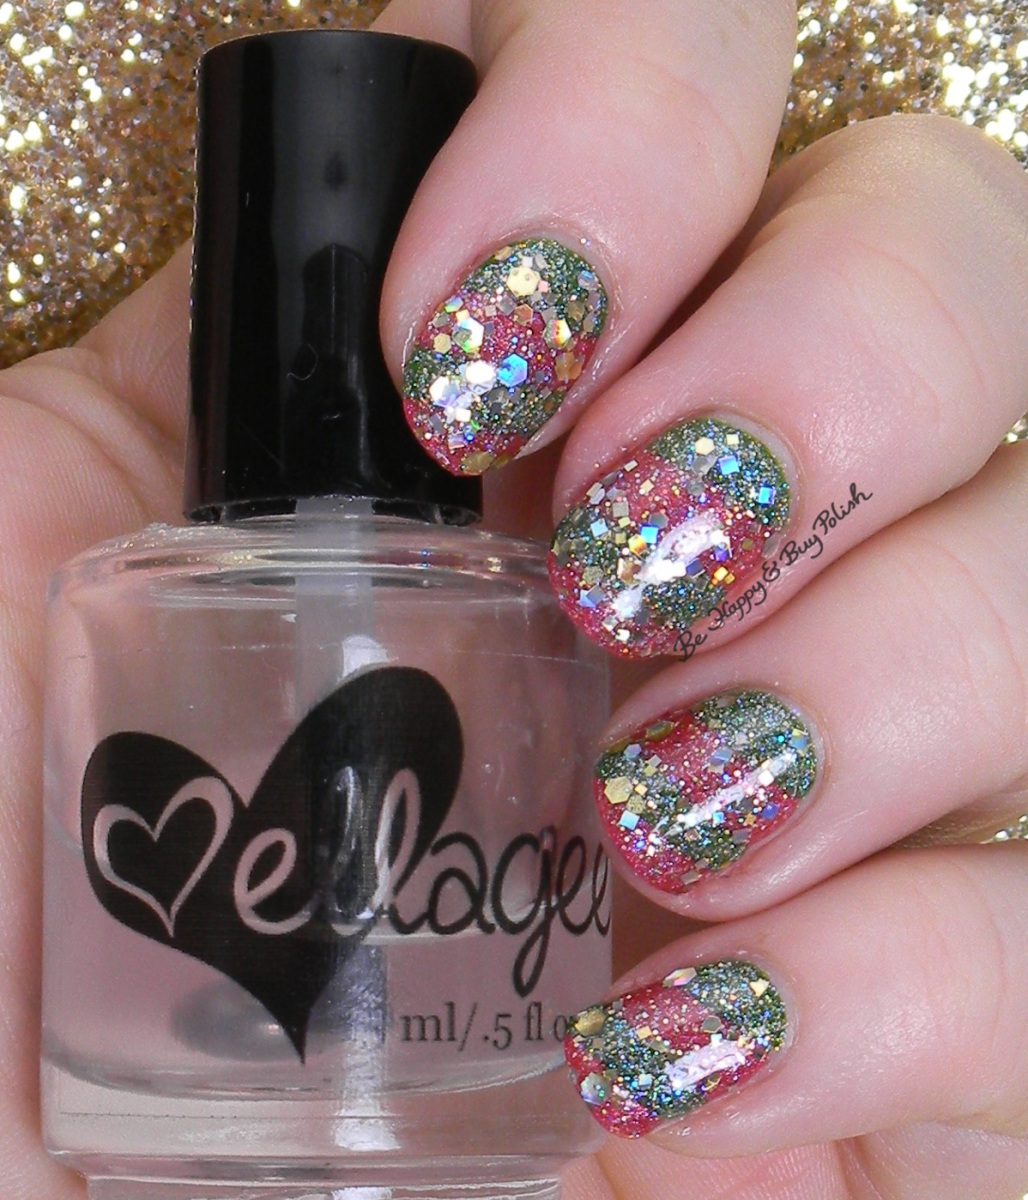 Shimmer And Sparkle Nail Polish: 12 Days Of Christmas Nail Art: Glitter